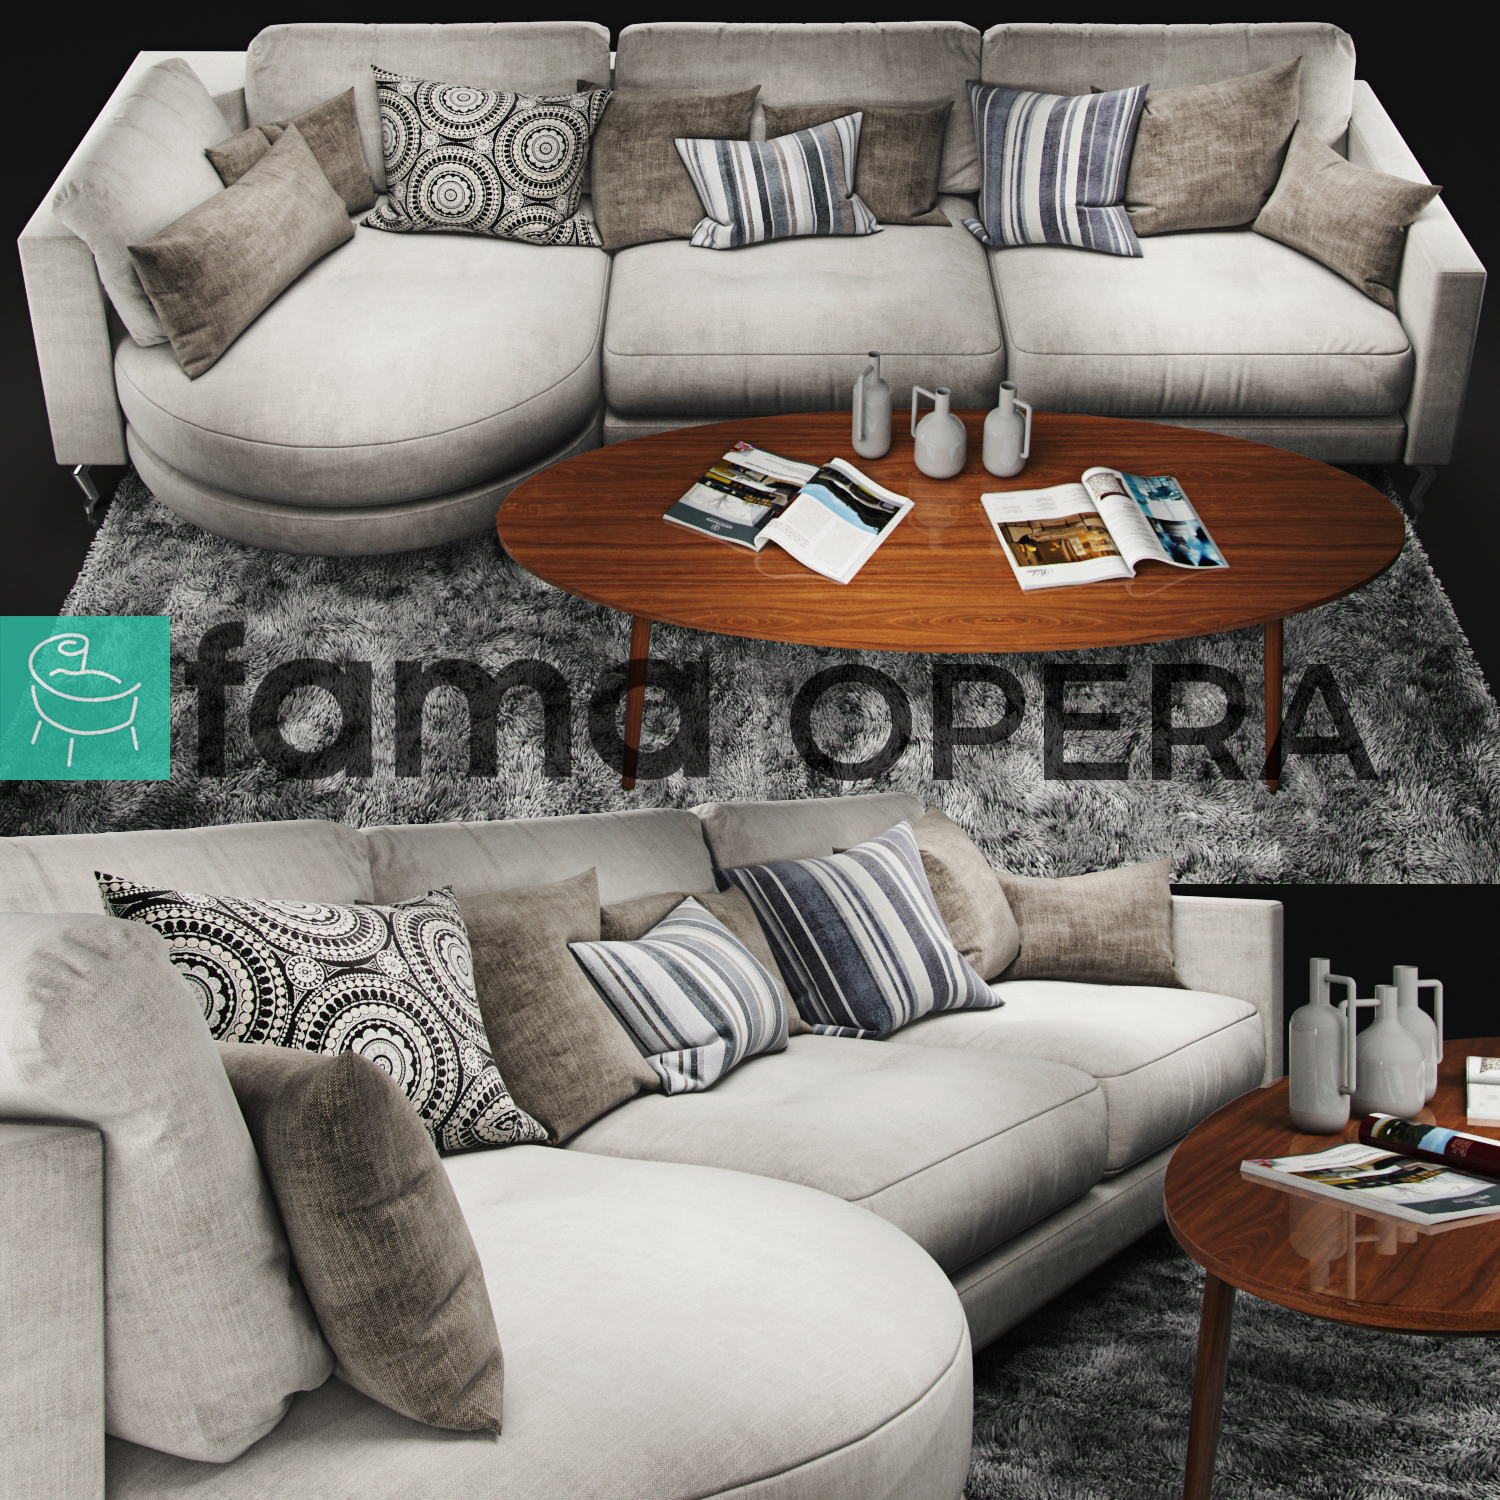 Awe Inspiring Sofa Fama Opera White Gmtry Best Dining Table And Chair Ideas Images Gmtryco